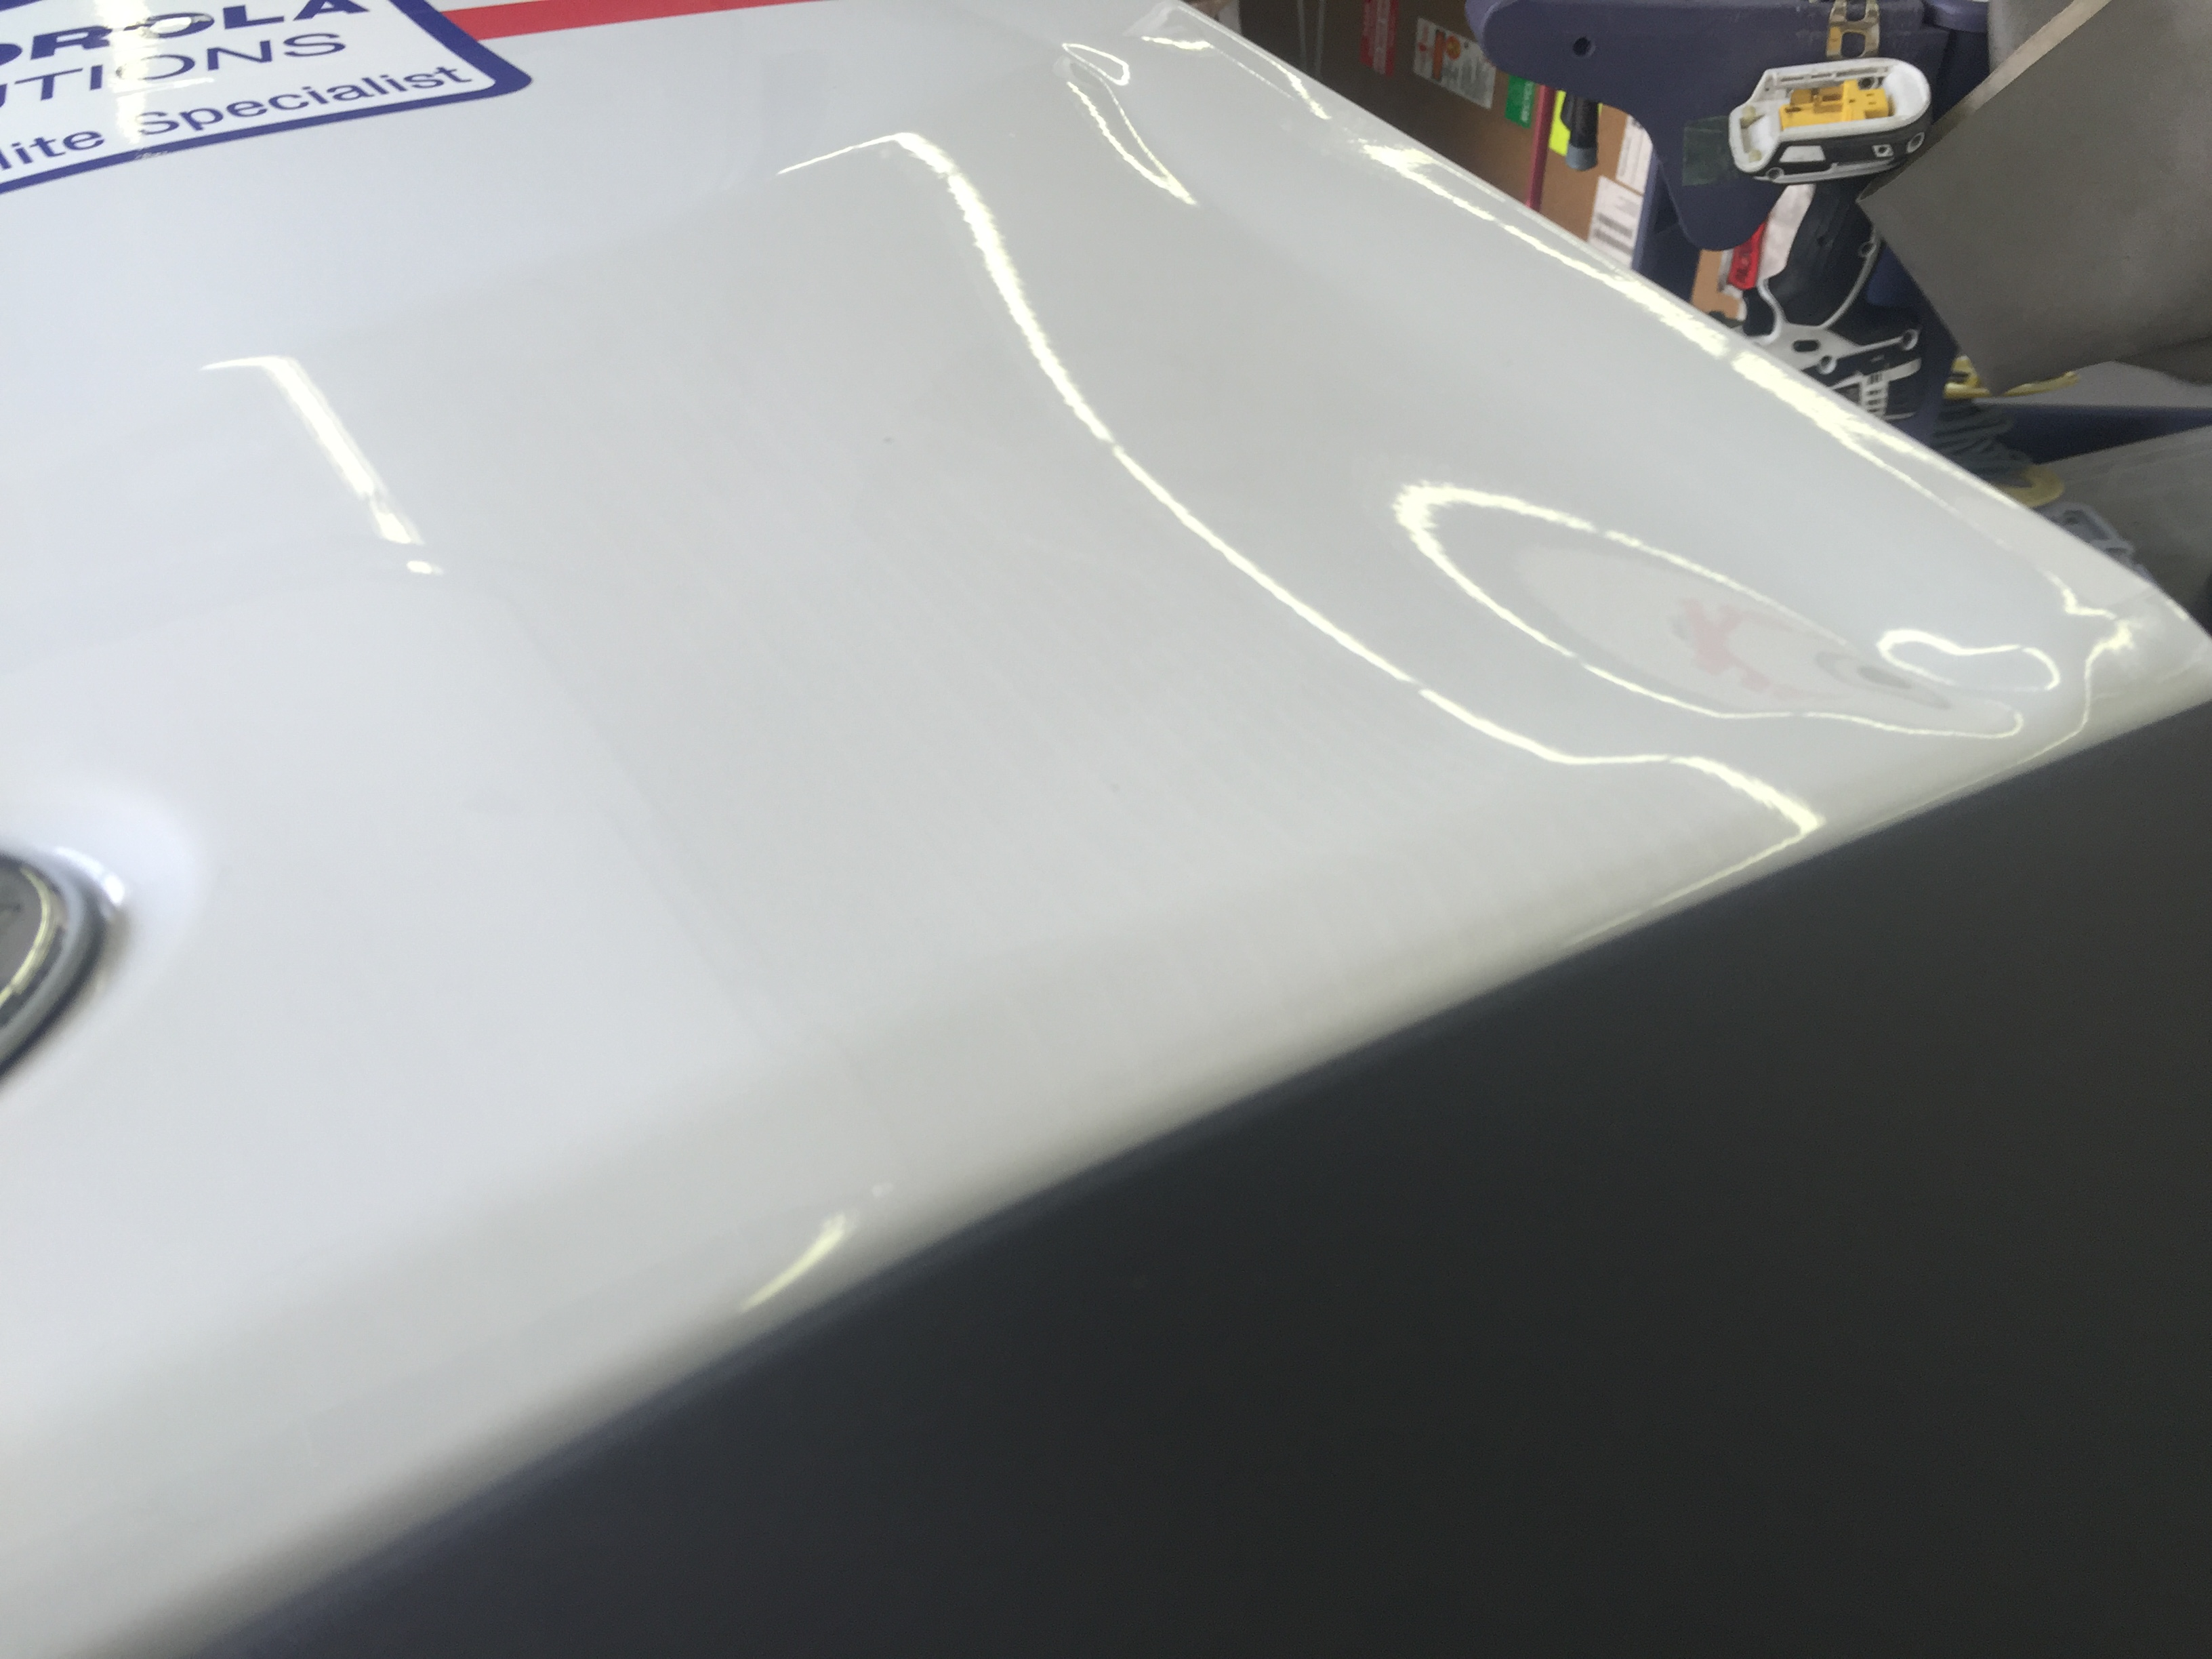 2016 Ford Transit Rear Door, Paintless dent removal, 217 Dent, http://217dent.com Springfield, IL Mobile Dent Repair. Dent Removal, Ding Removal, Springfield, IL